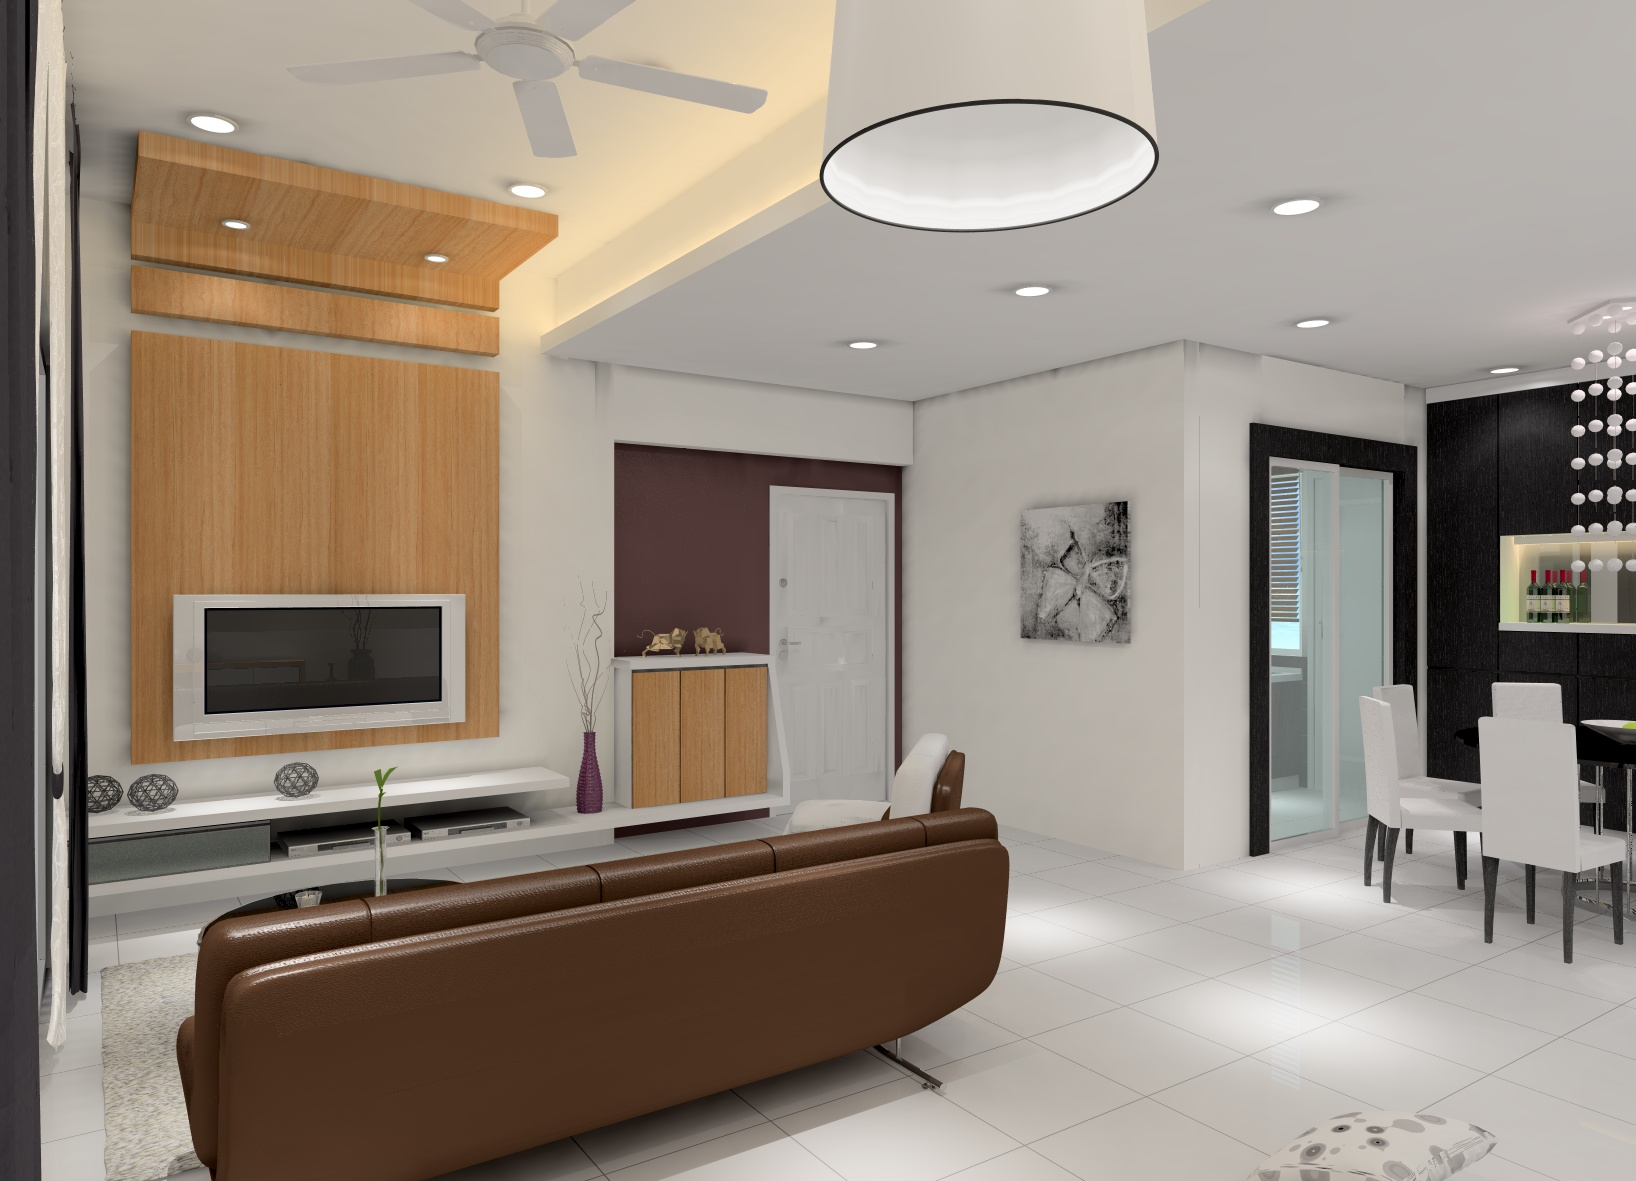 Interior design malaysia l expert interior design for An interior design